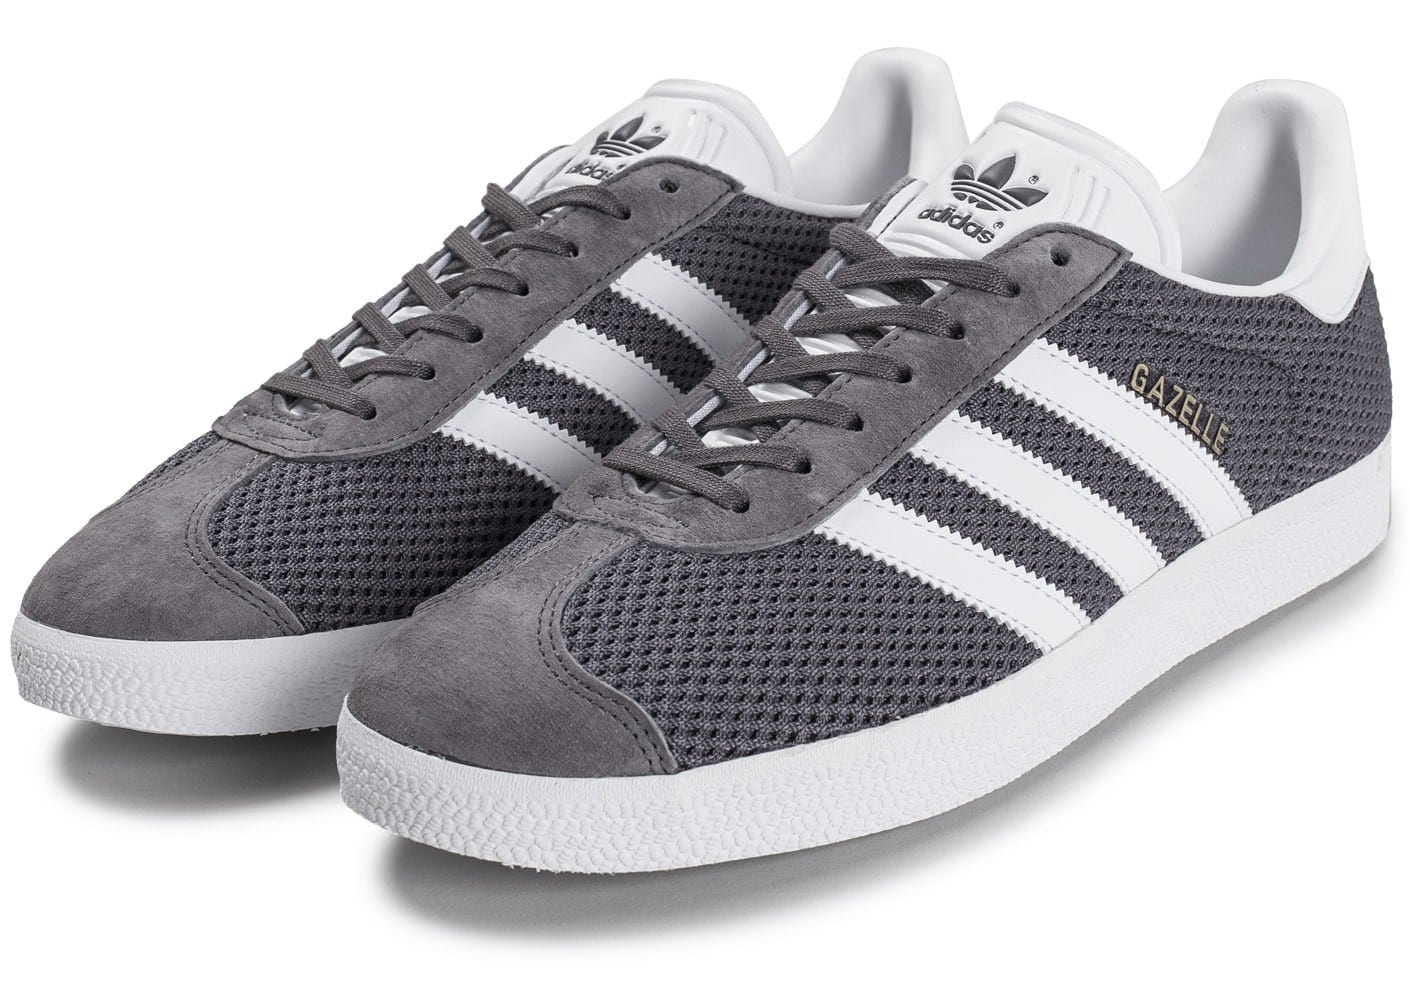 adidas gazelle mesh grise chaussures homme chausport. Black Bedroom Furniture Sets. Home Design Ideas